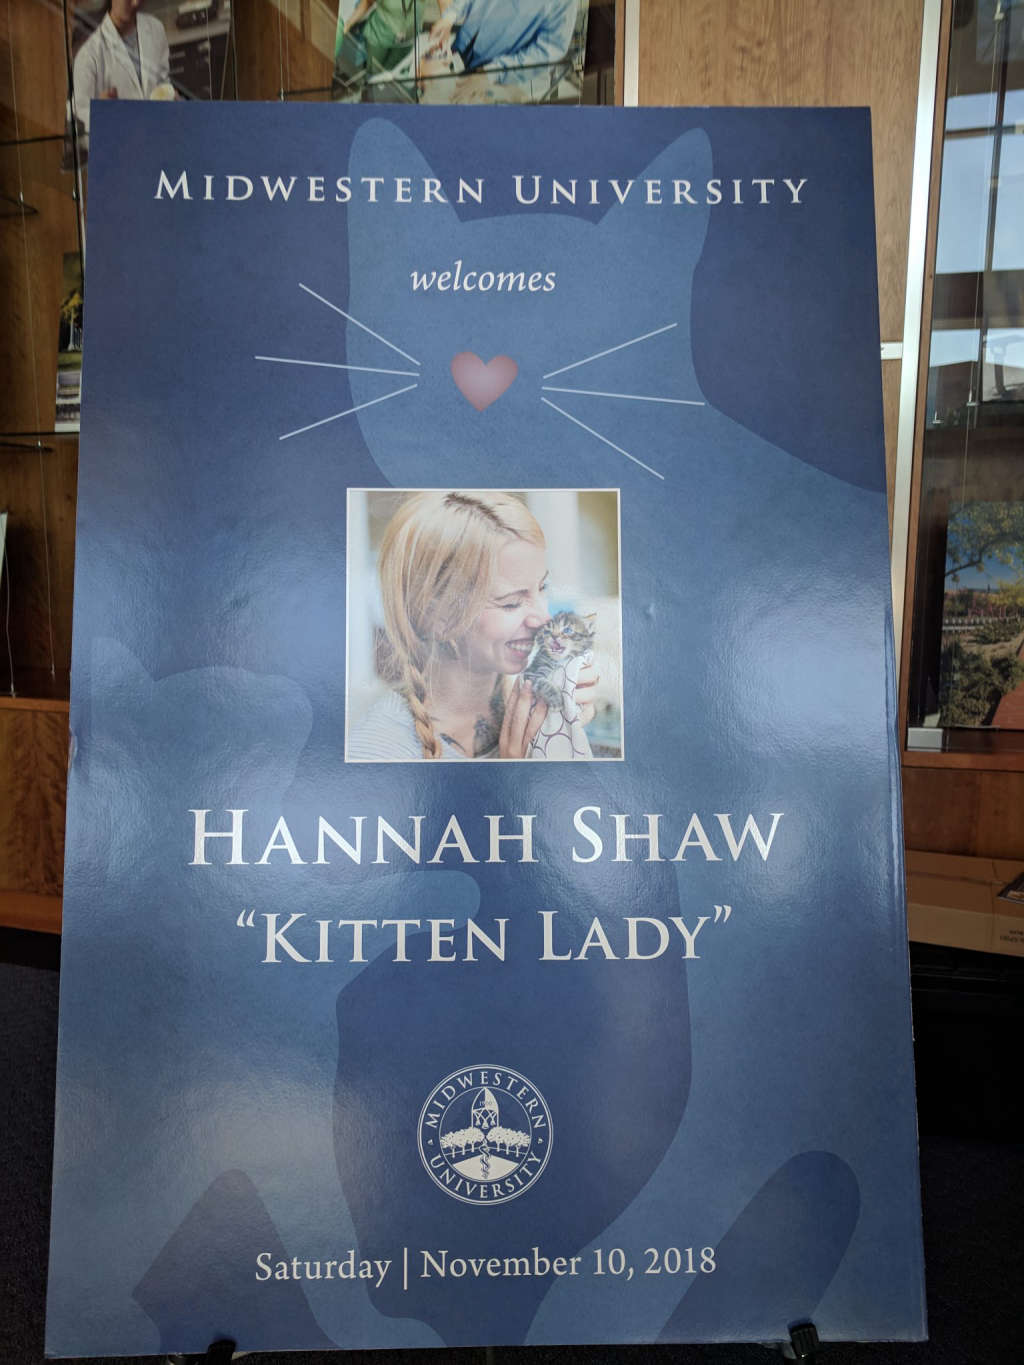 Cover Image for MEETING KITTEN LADY